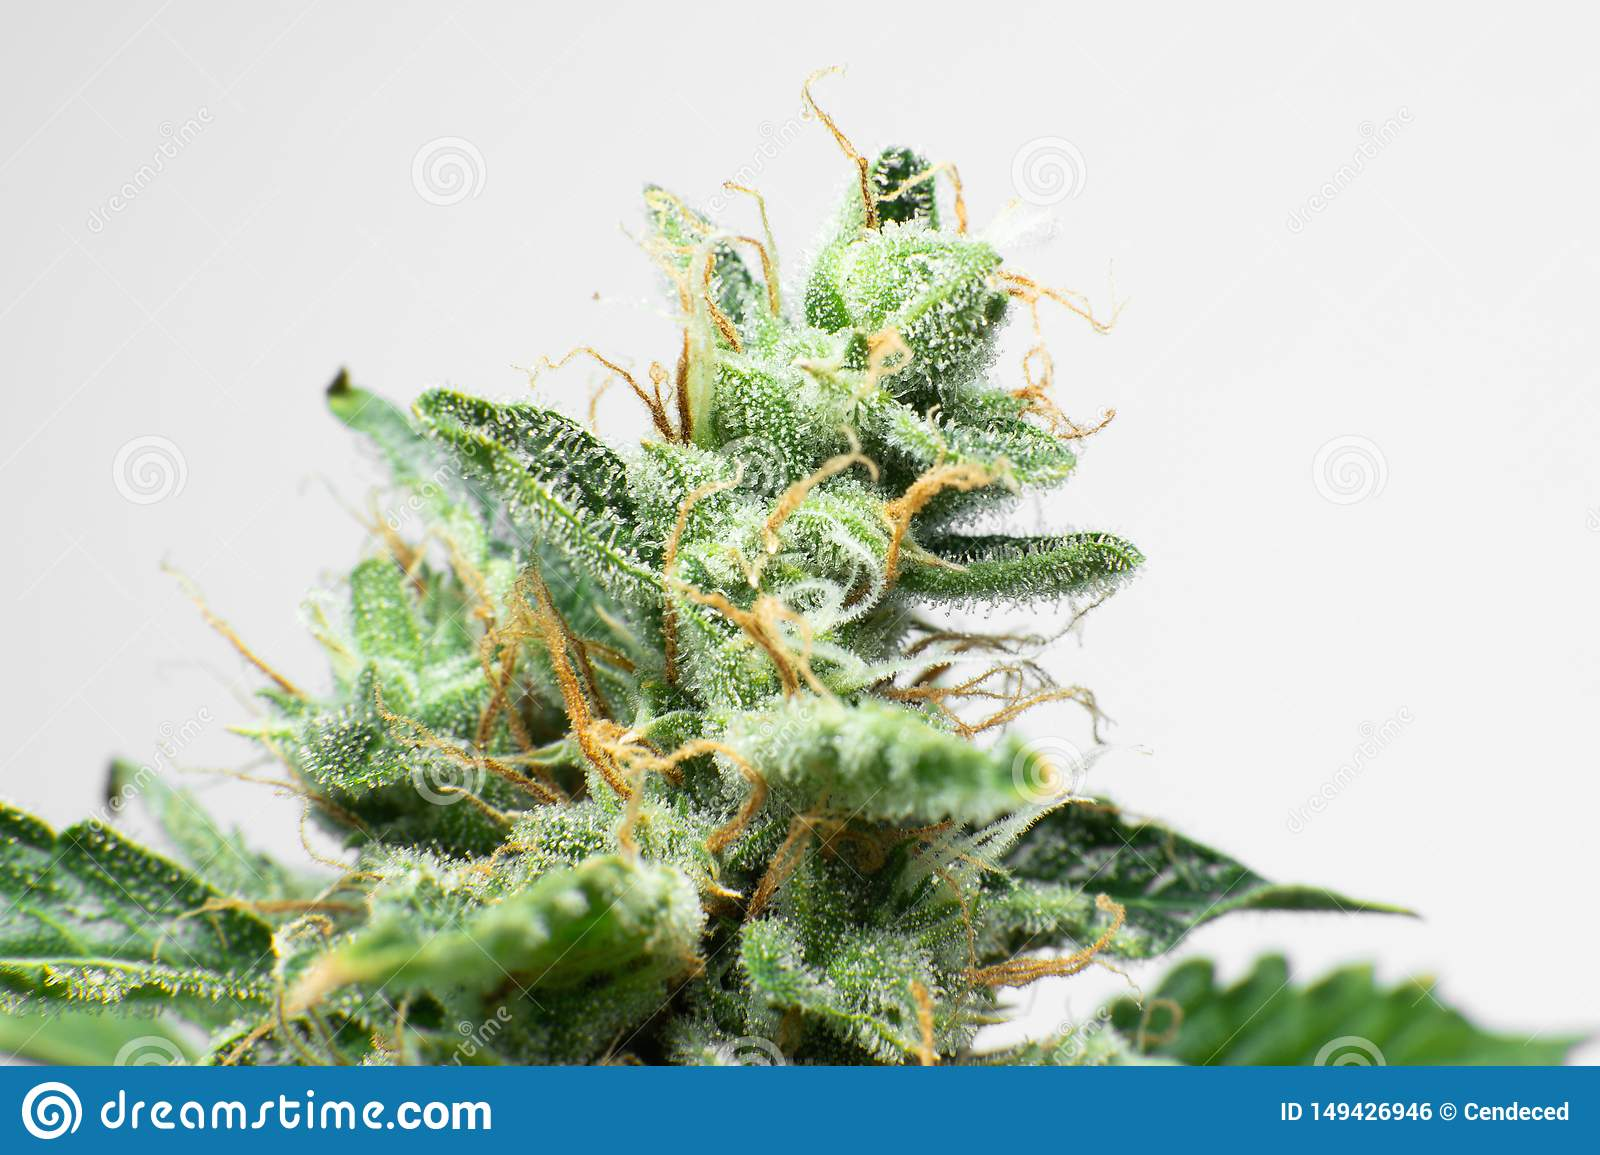 Indica Flower  Fresh Green Weed In Details  CBD THC In Pot